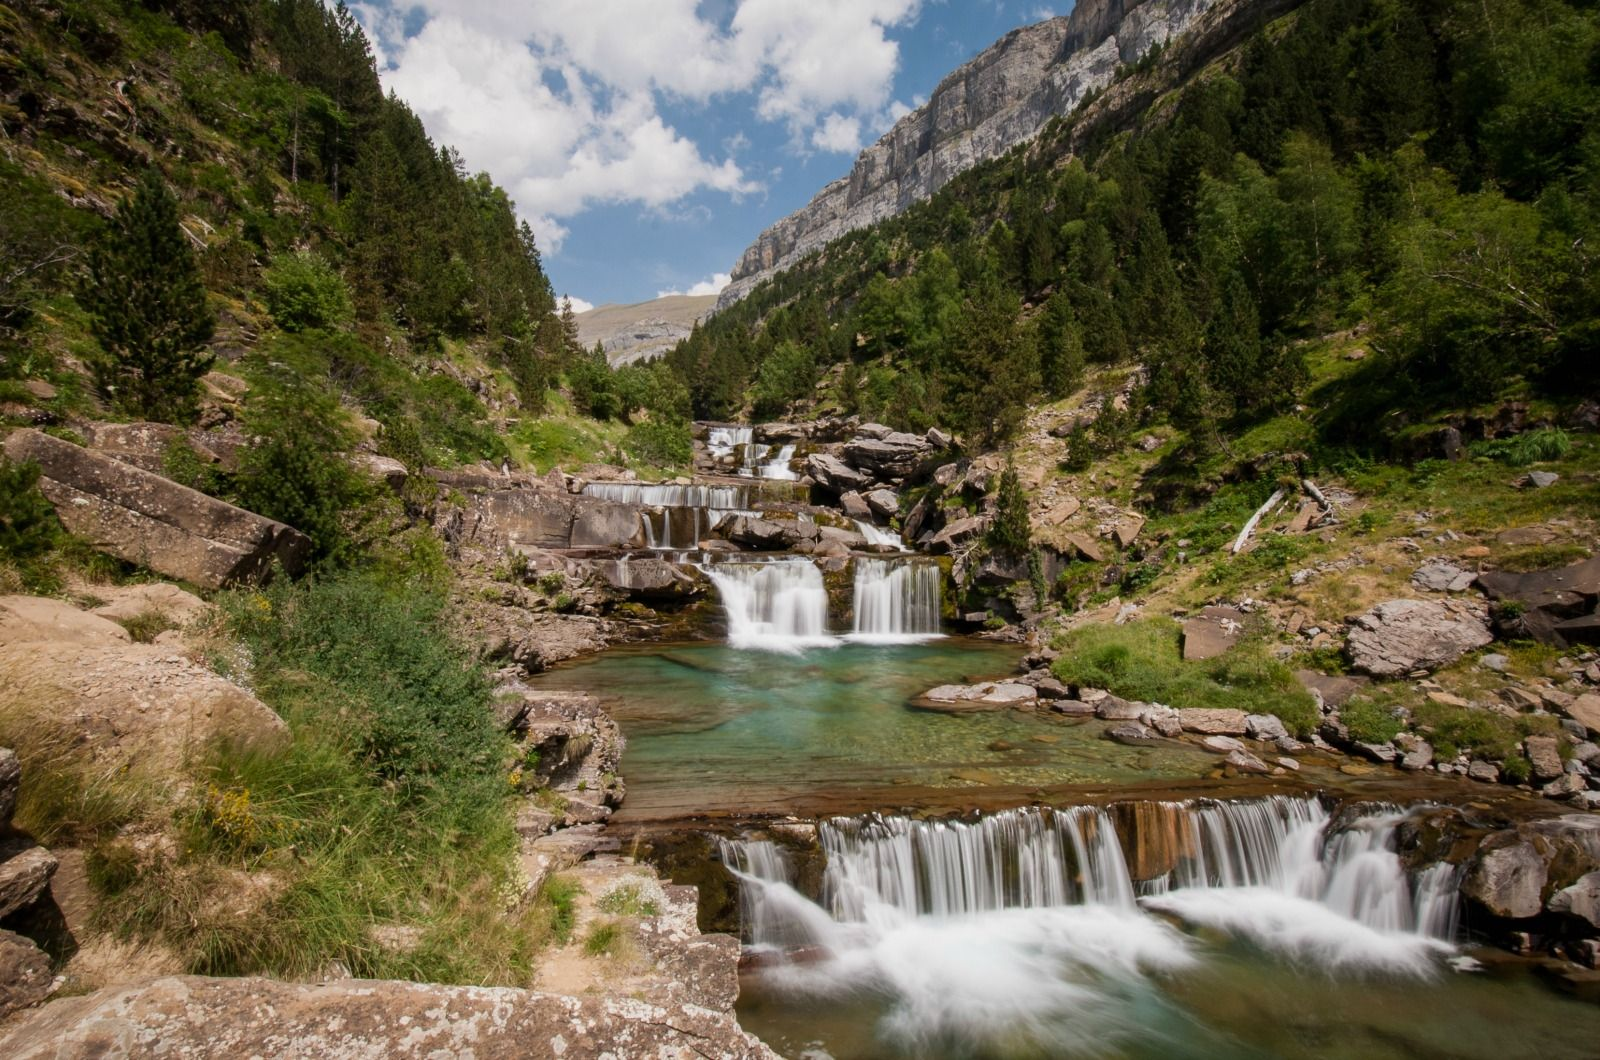 A view of the Soaso waterfalls in the Ordesa National Park on Aragon Active Guided walking Holiday Spain